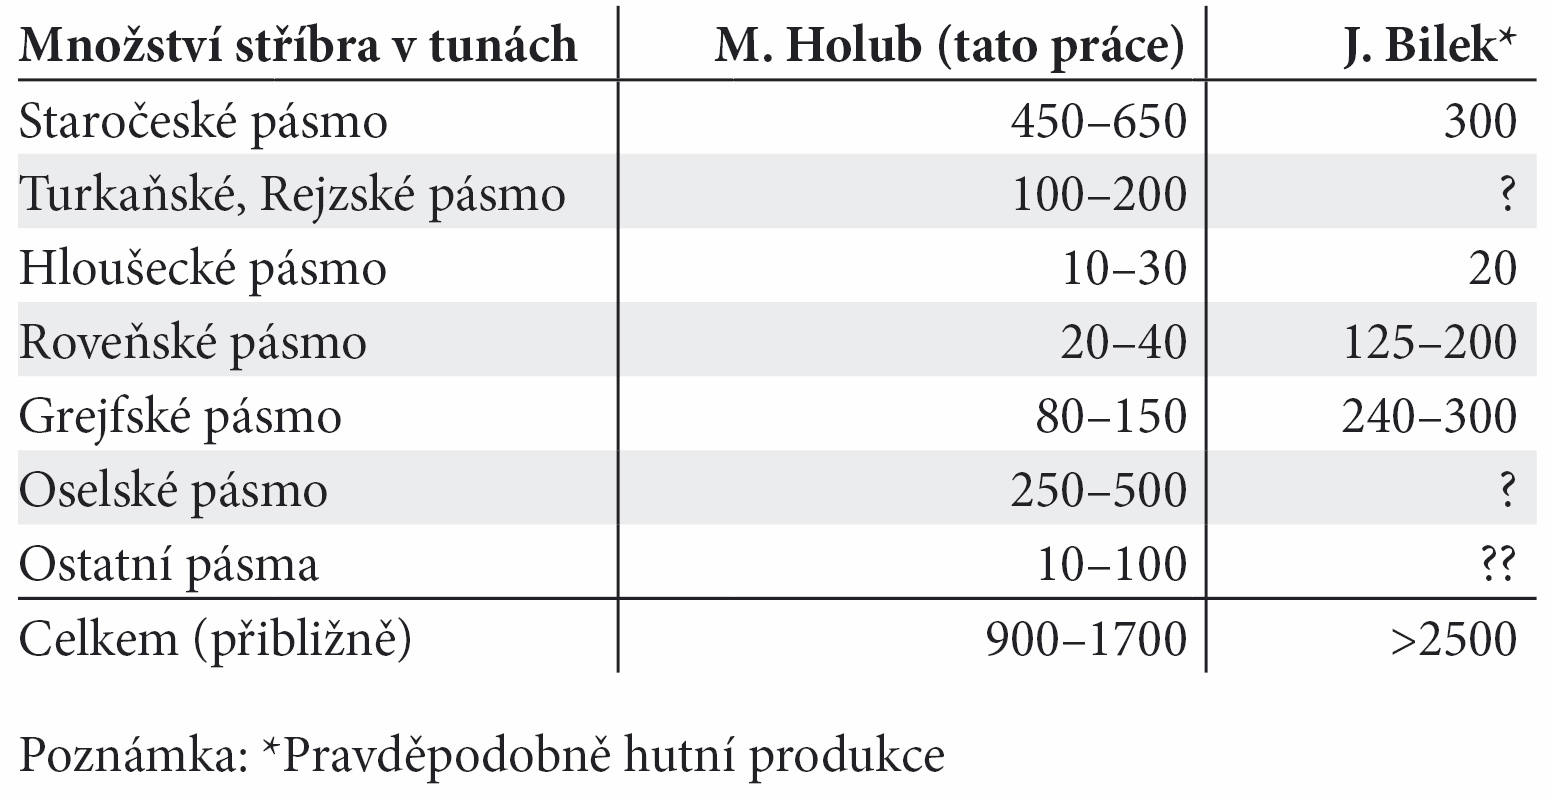 Tab. 2. Odhad množství stříbra obsaženého v rudě vytěžené z hlavních rudních pásem. Tab. 2. The estimation of the quantity of the silver obtained in the ore mined out from main ore zones.